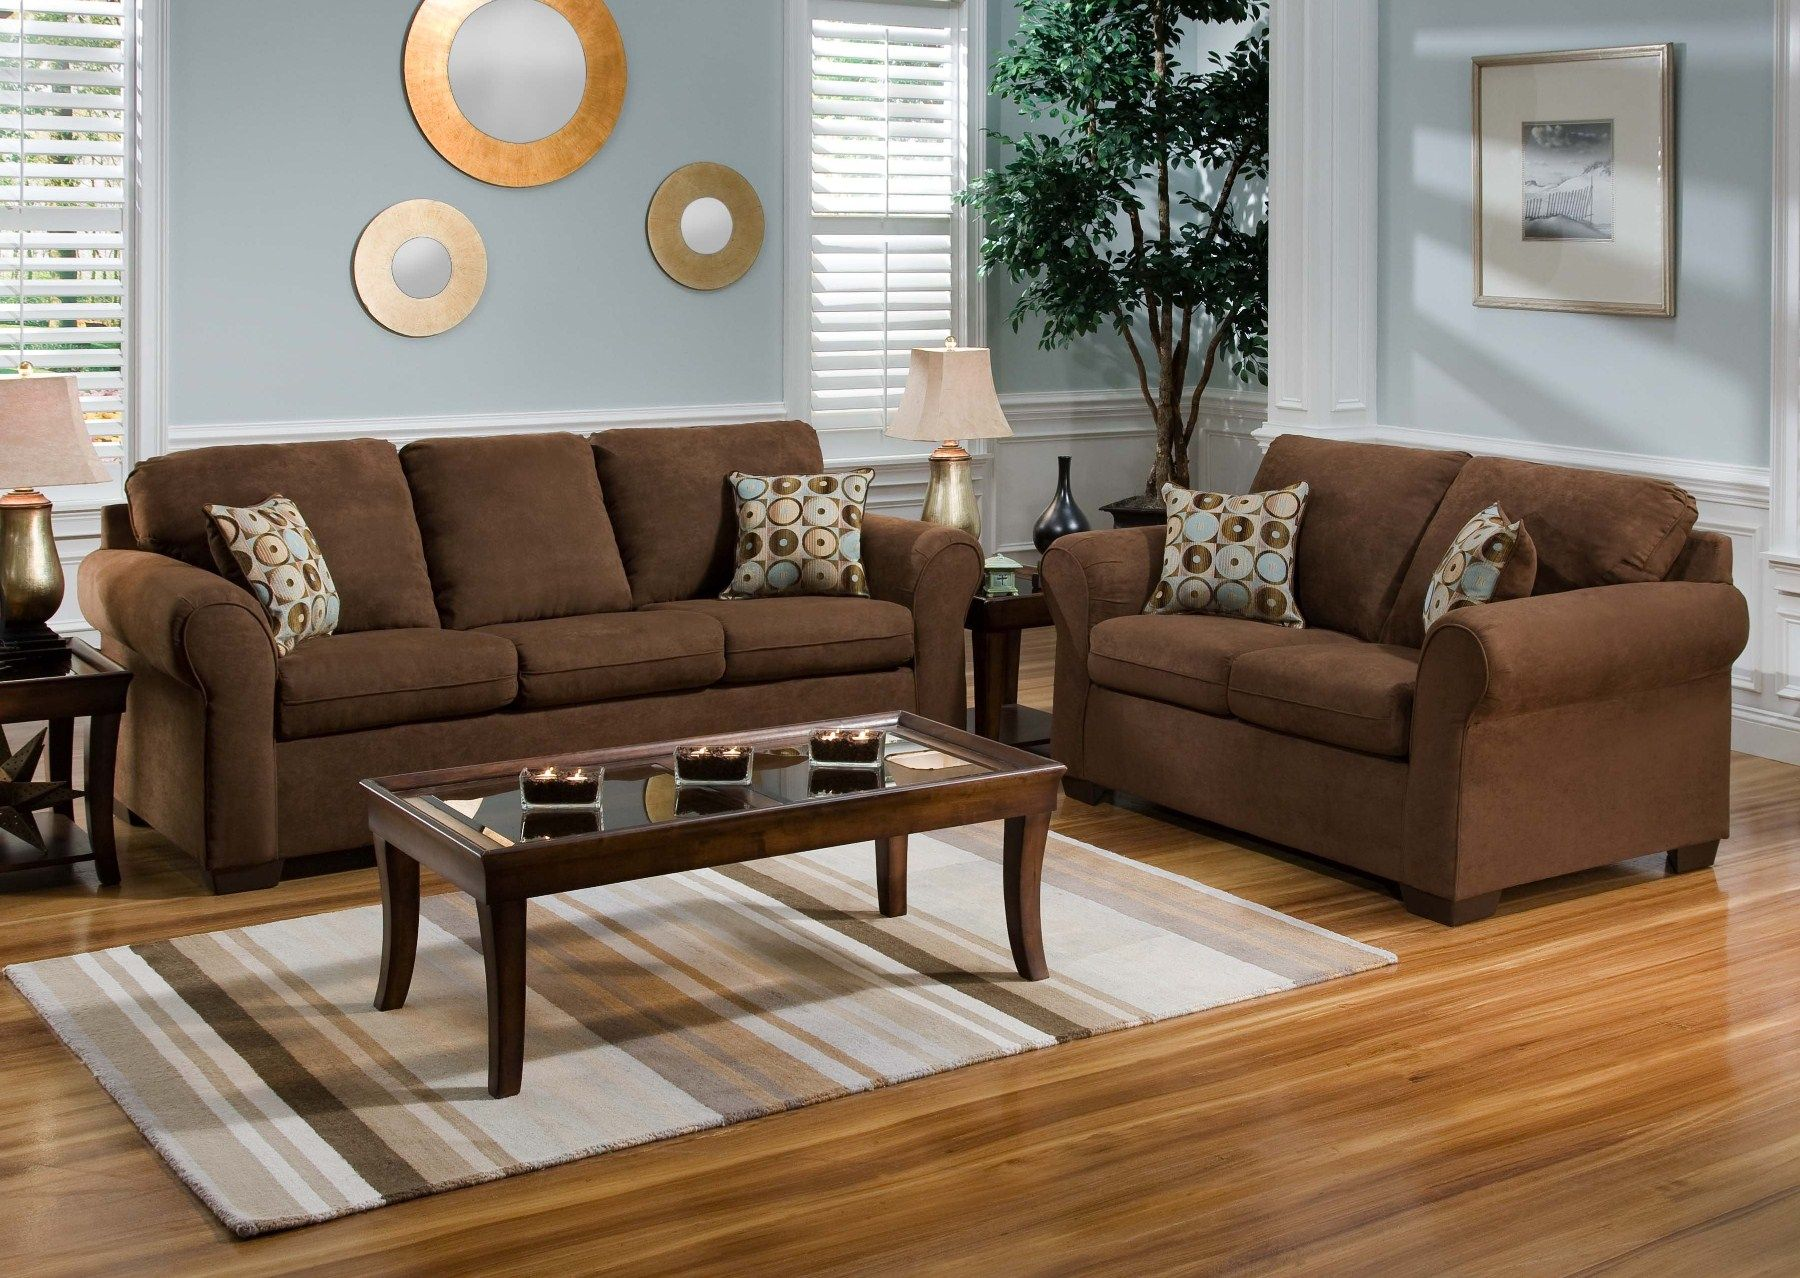 Living Room, Warm Living Room Color Schemes With Chocolate Brown ...